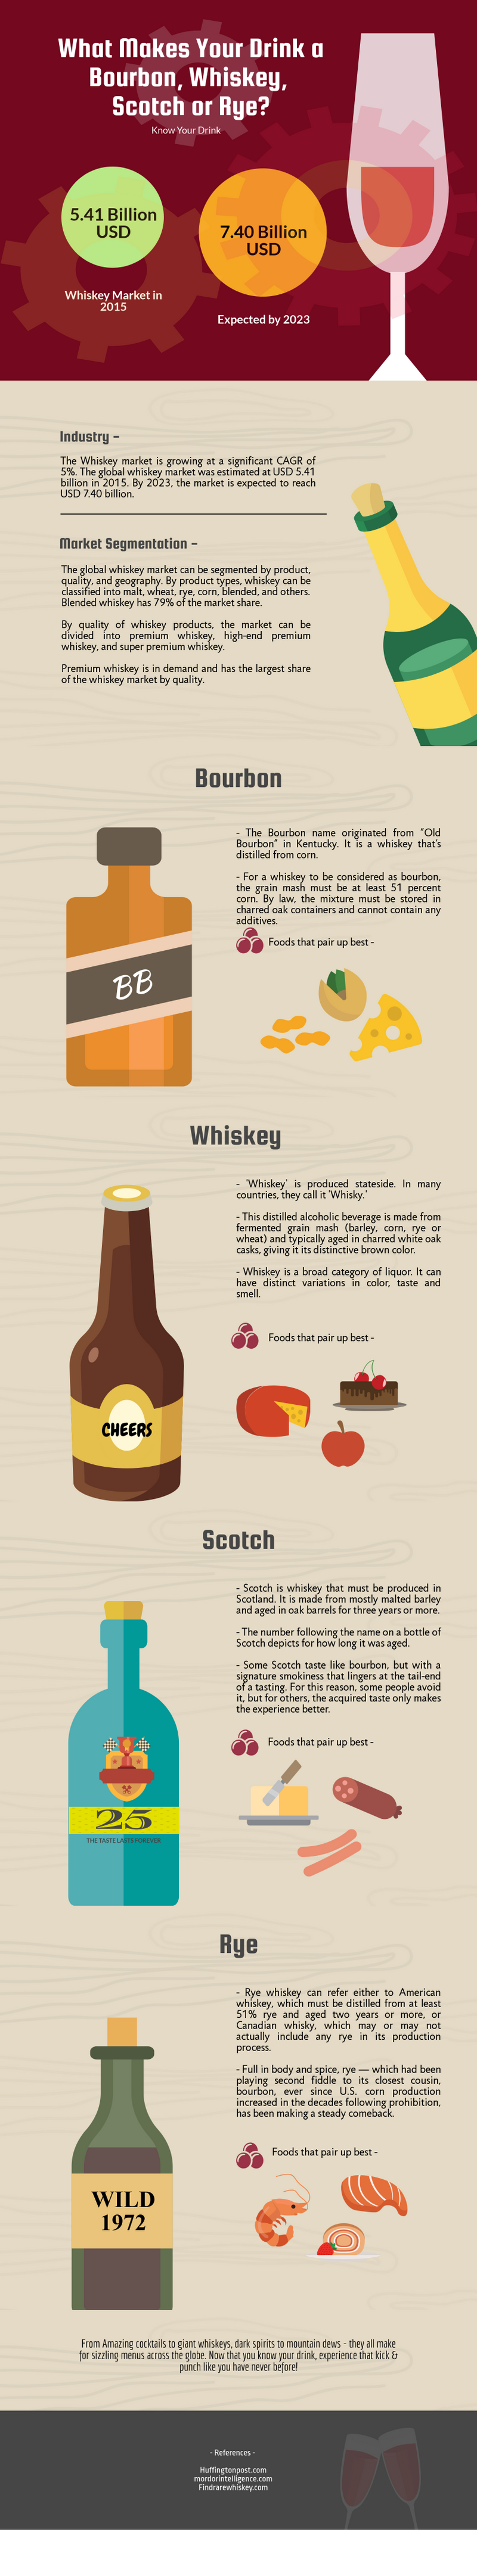 types-of-whiskey